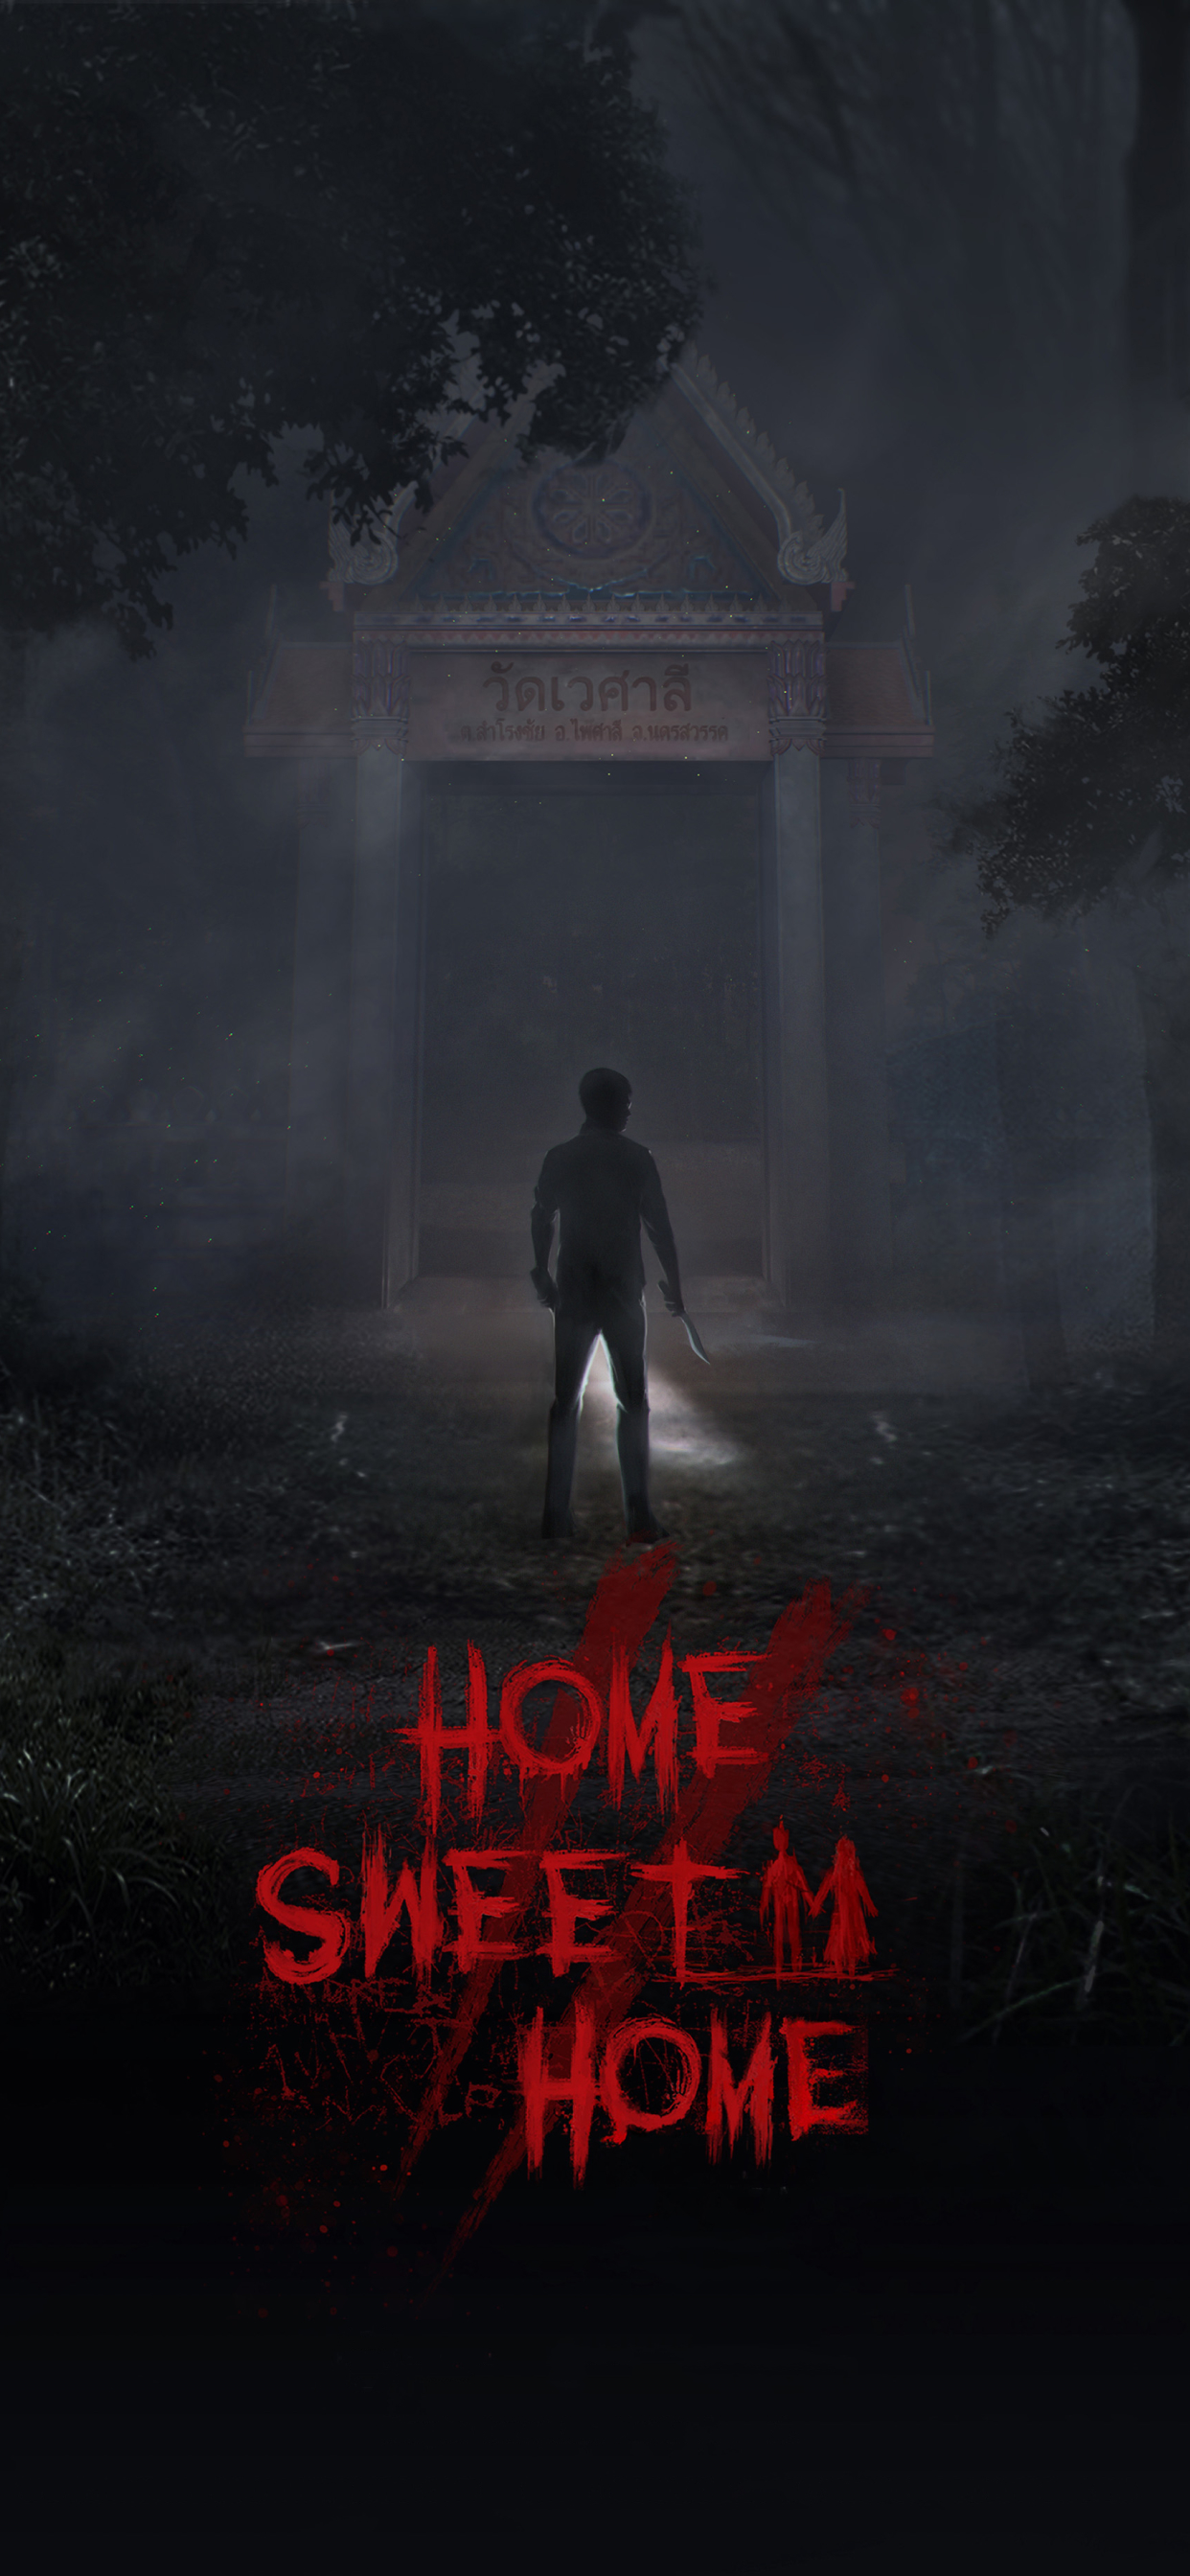 1242x2688 Home Sweet Home Game Iphone Xs Max Wallpaper Hd Games 4k Wallpapers Images Photos And Background